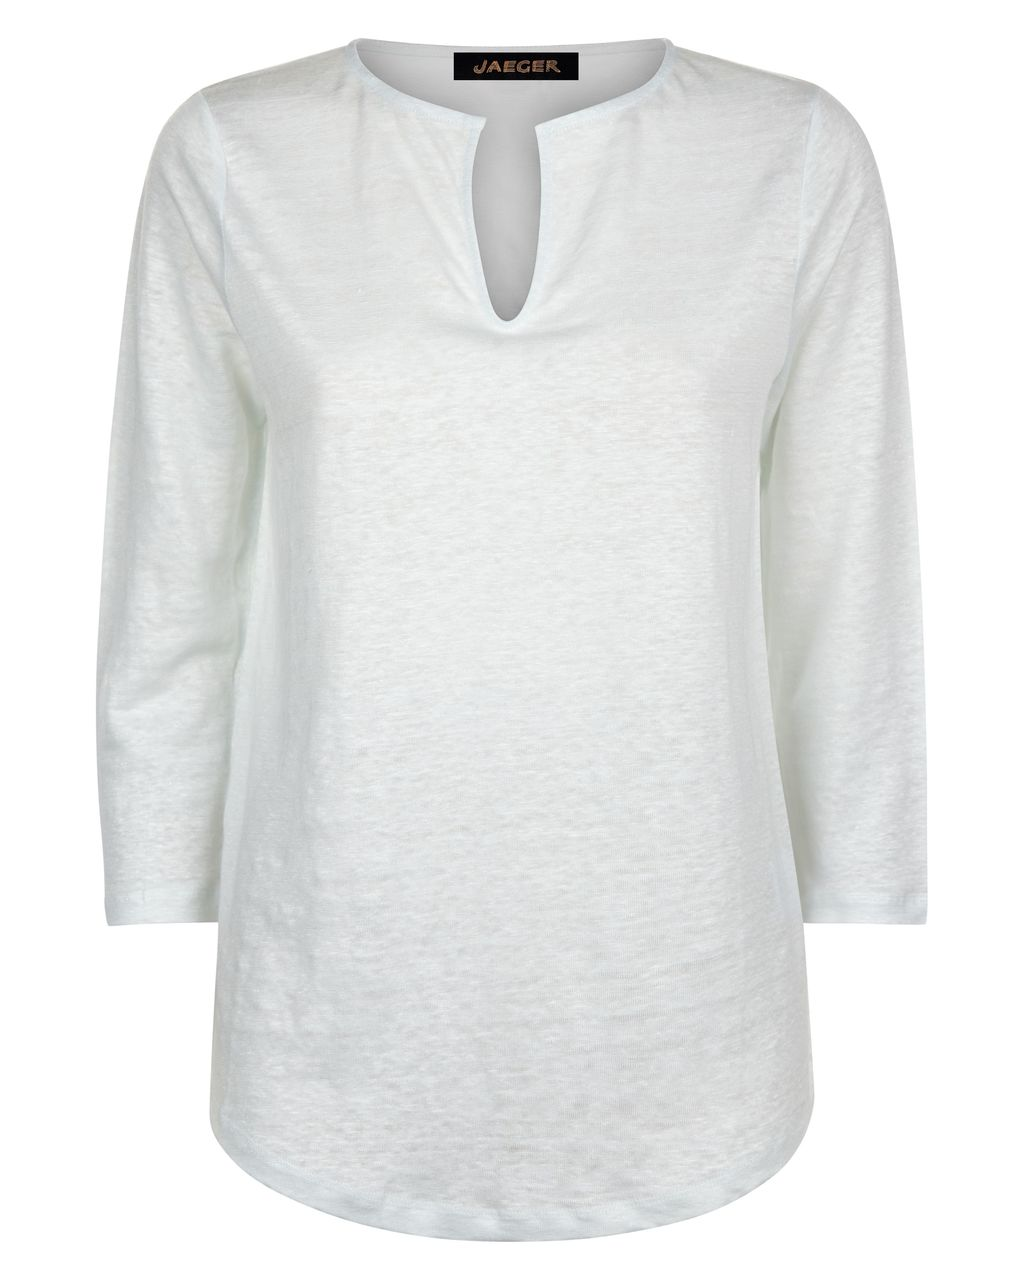 Linen Jersey T Shirt, Blue - pattern: plain; style: t-shirt; predominant colour: white; occasions: casual, creative work; length: standard; neckline: collarstand & mandarin with v-neck; fibres: linen - 100%; fit: body skimming; sleeve length: 3/4 length; sleeve style: standard; pattern type: fabric; texture group: jersey - stretchy/drapey; season: s/s 2016; wardrobe: basic